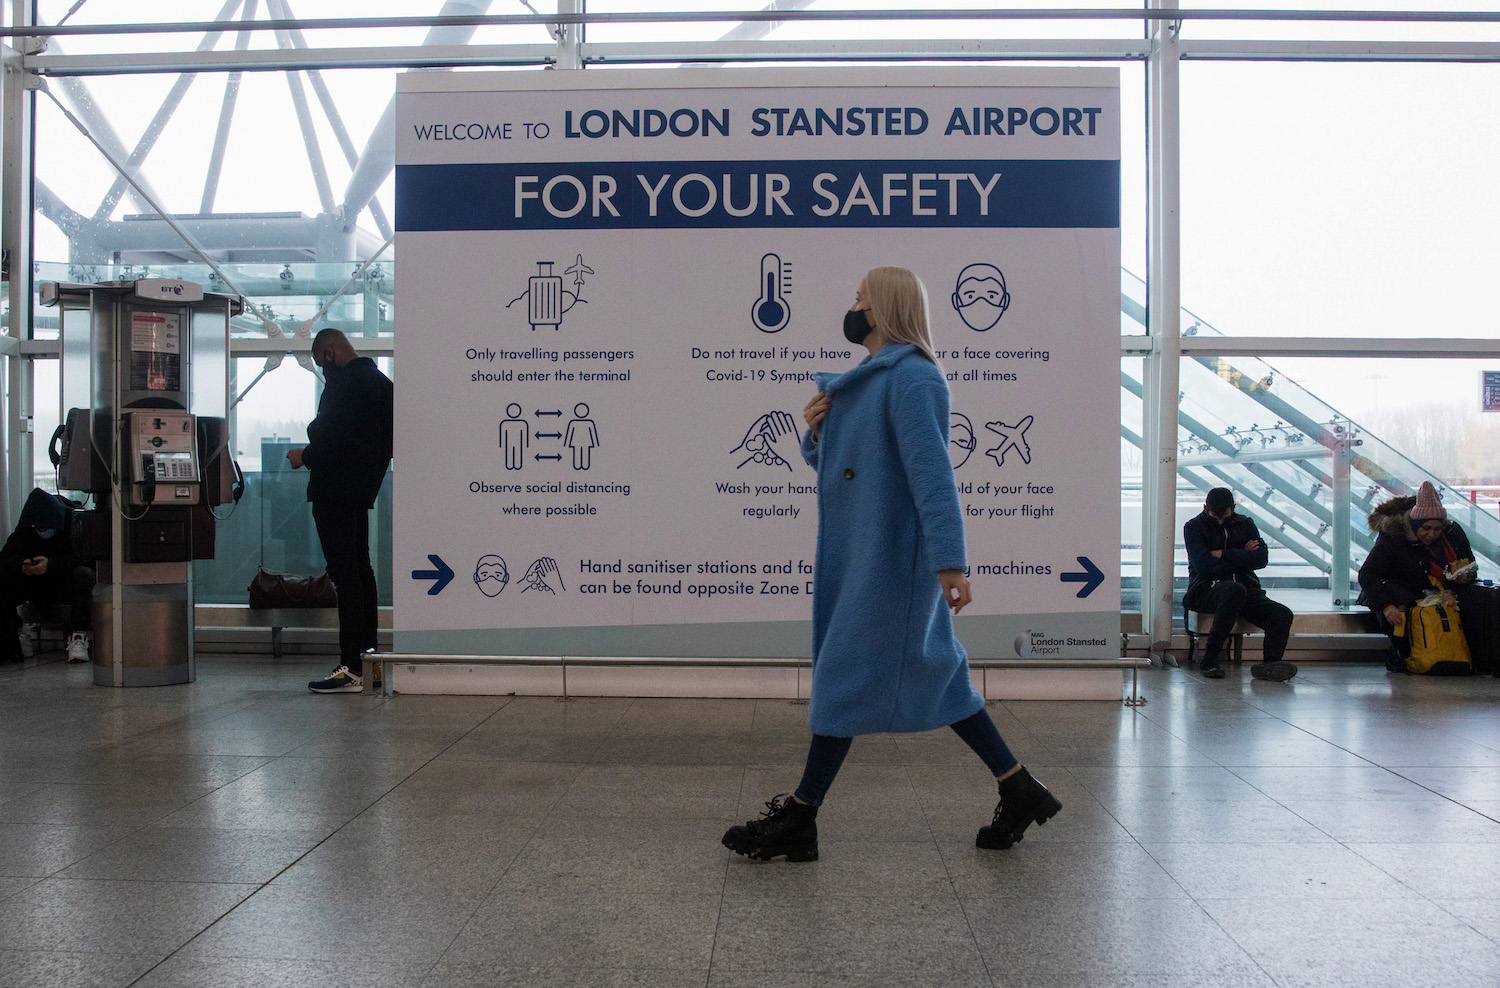 A passenger walks past a public health information board at London Stansted Airport on Friday. (Bloomberg Photo)